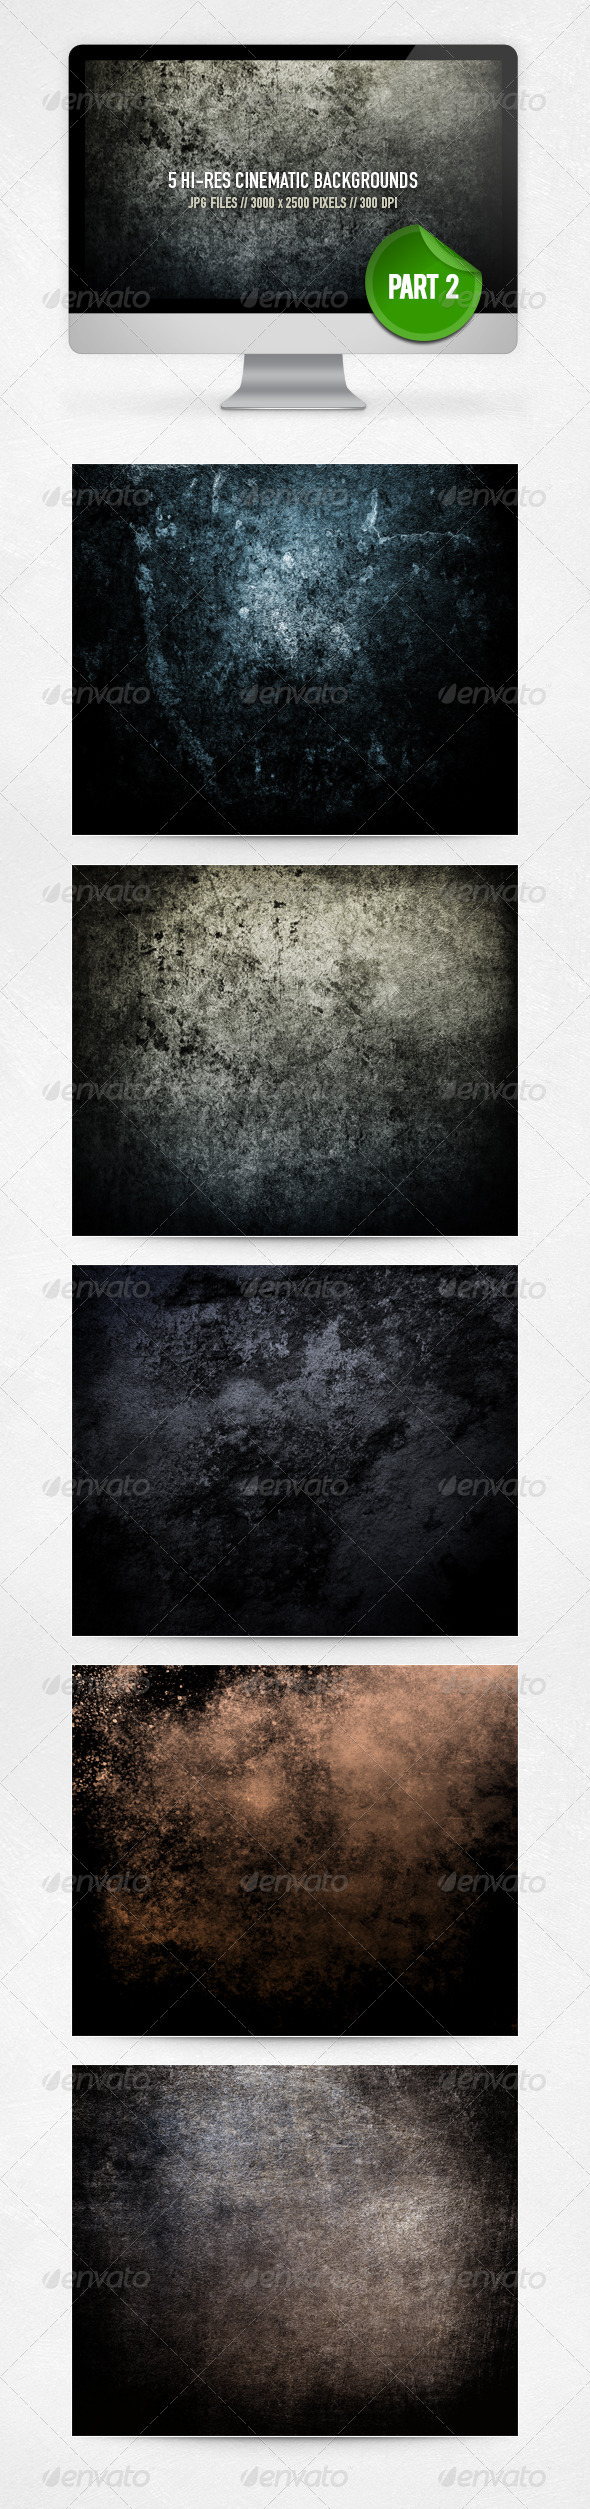 GraphicRiver Cinematic Backgrounds Part 2 4030570